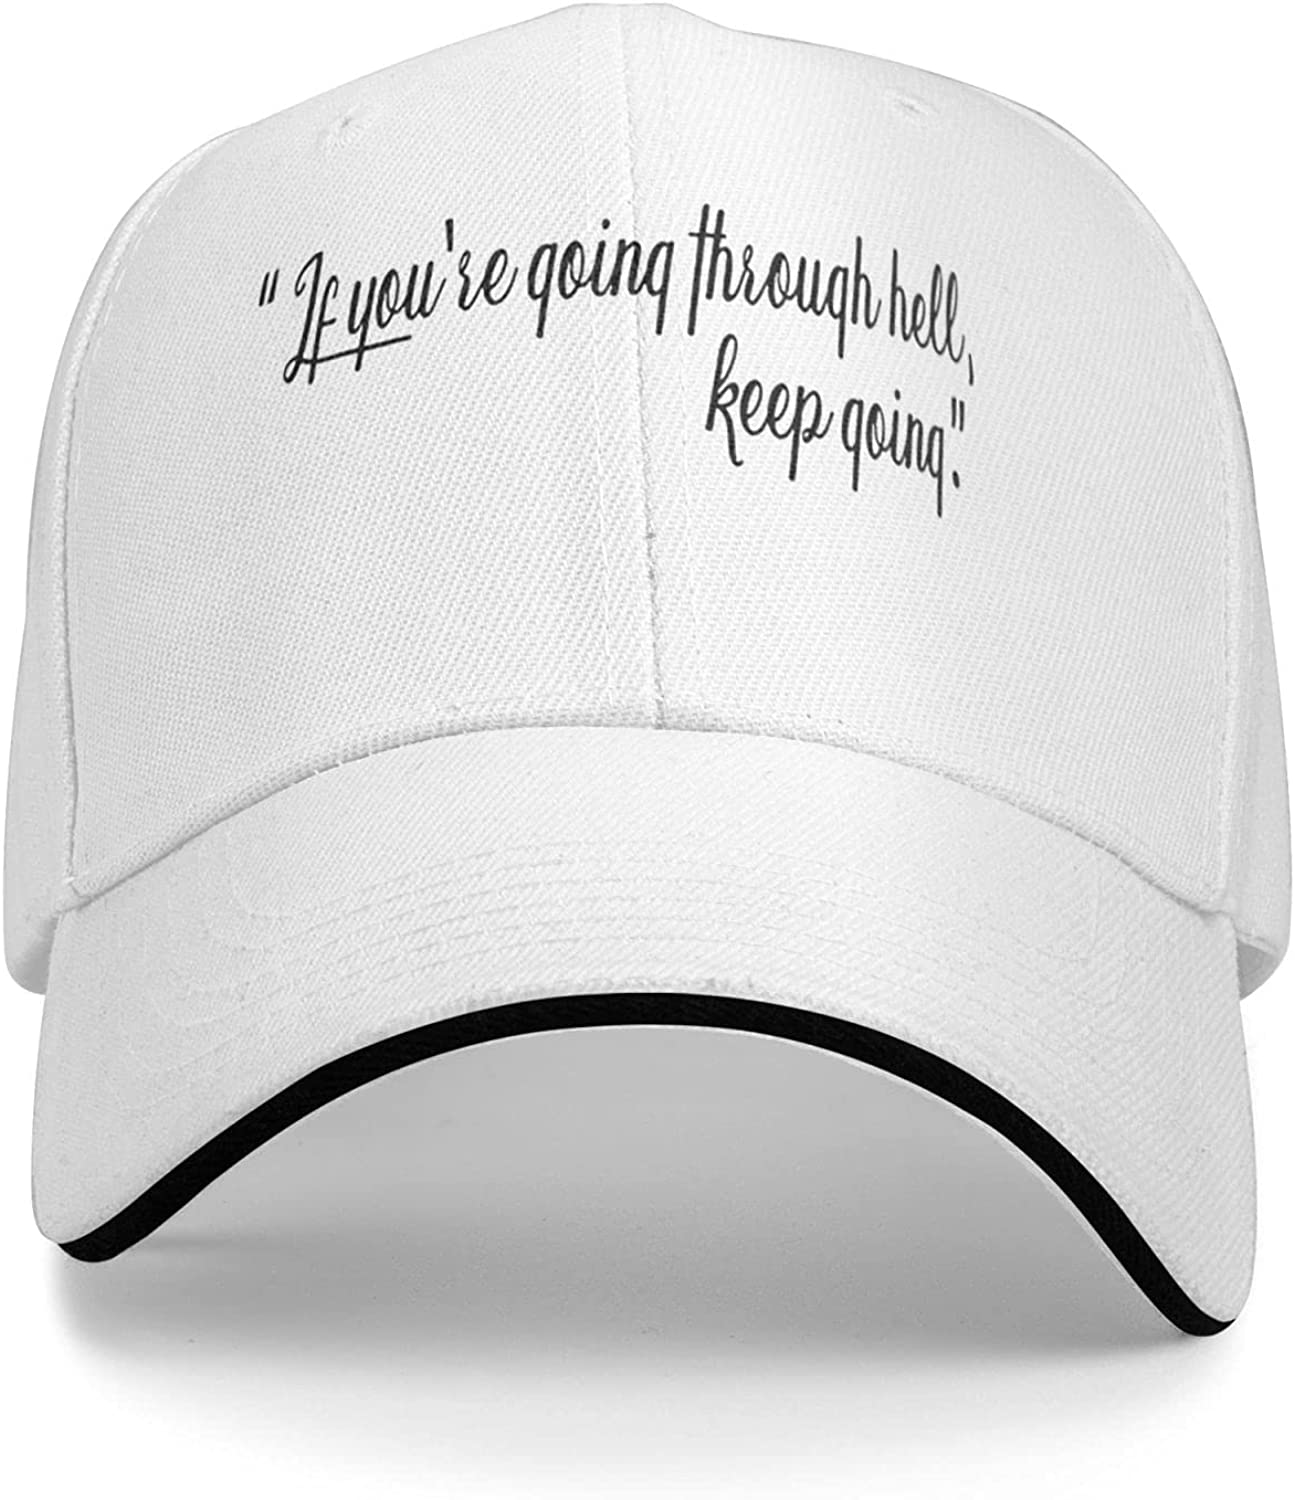 If You are Going Through Hell, Keep Going Flat Bill Hat Snapback Hats for Men Baseball Cap Trucker Hats Mens Adjustable Black